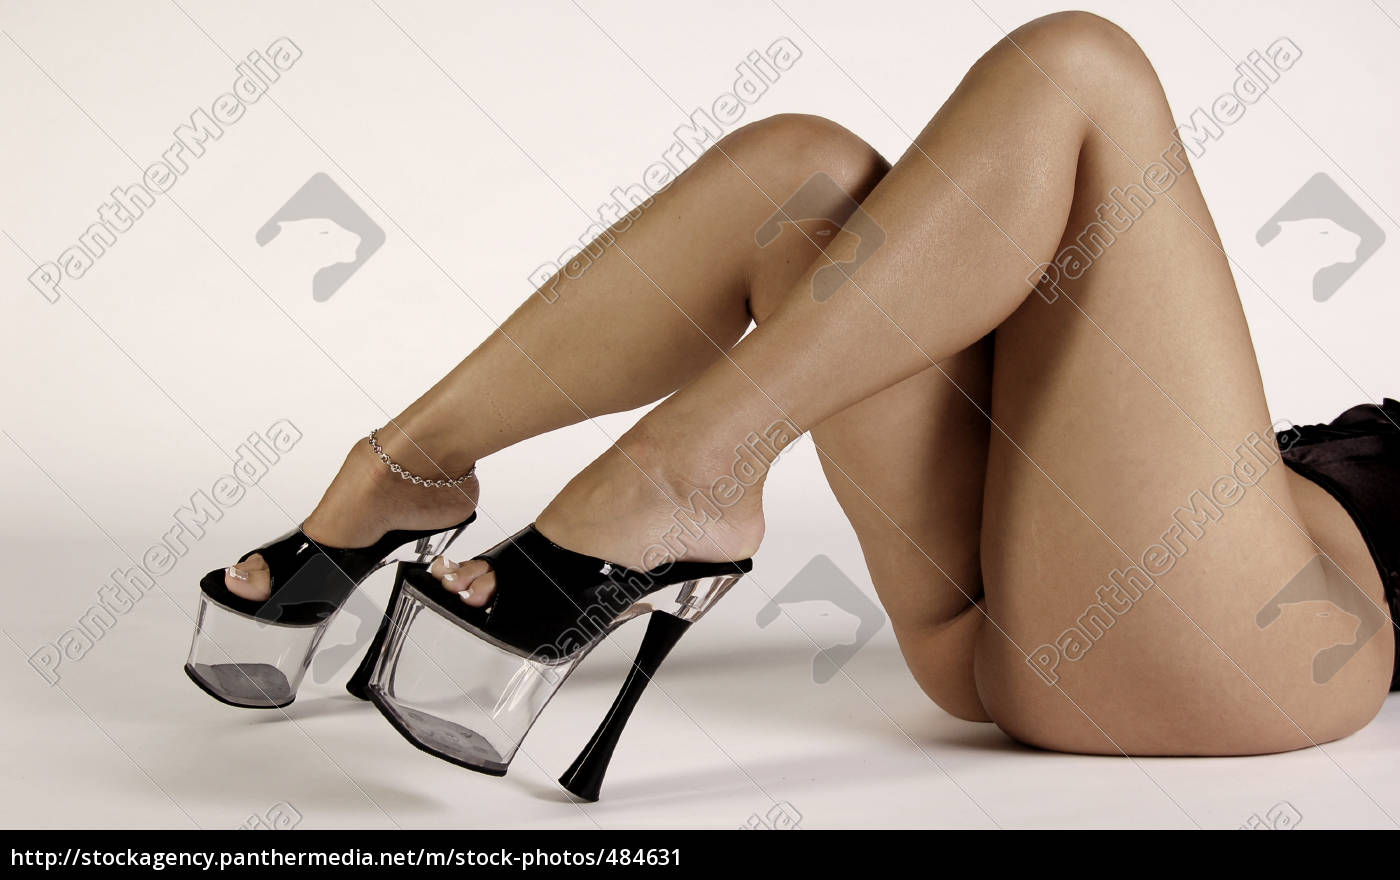 Sexy Legs Stock Photo 484631 Panthermedia Stock Agency